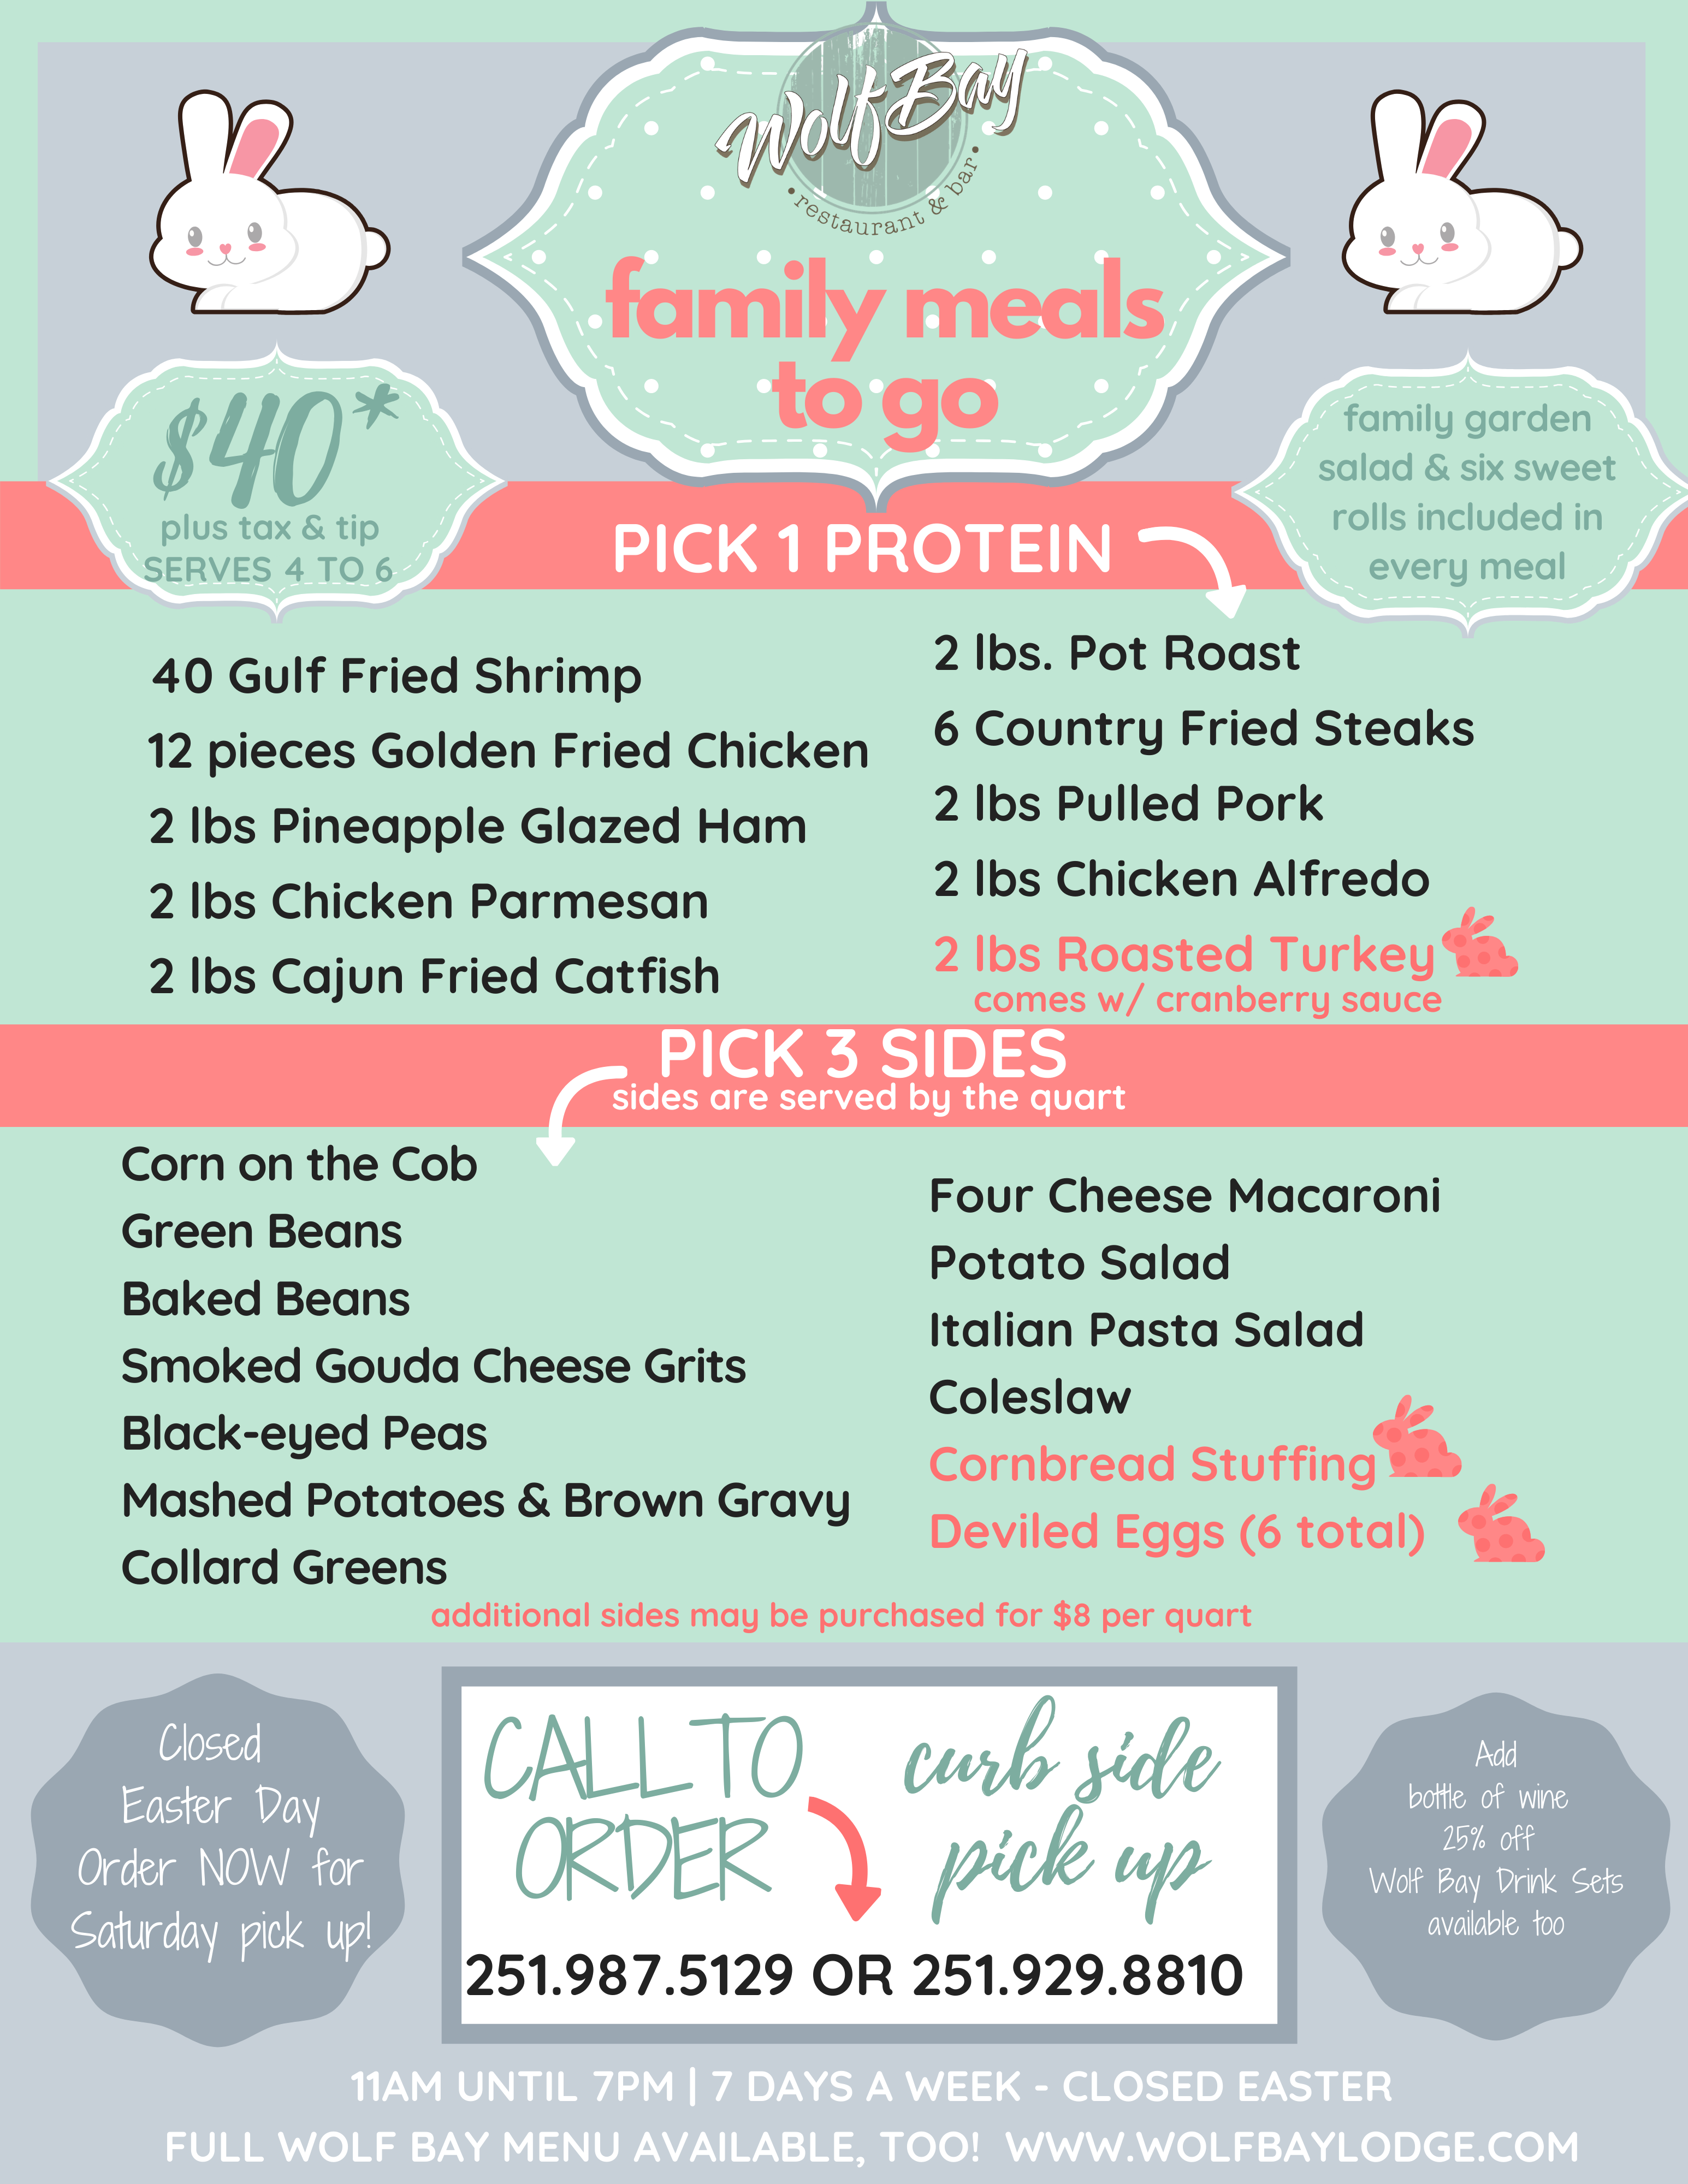 Family Meals Curb Side Pick Up in Foley - EASTER MENU